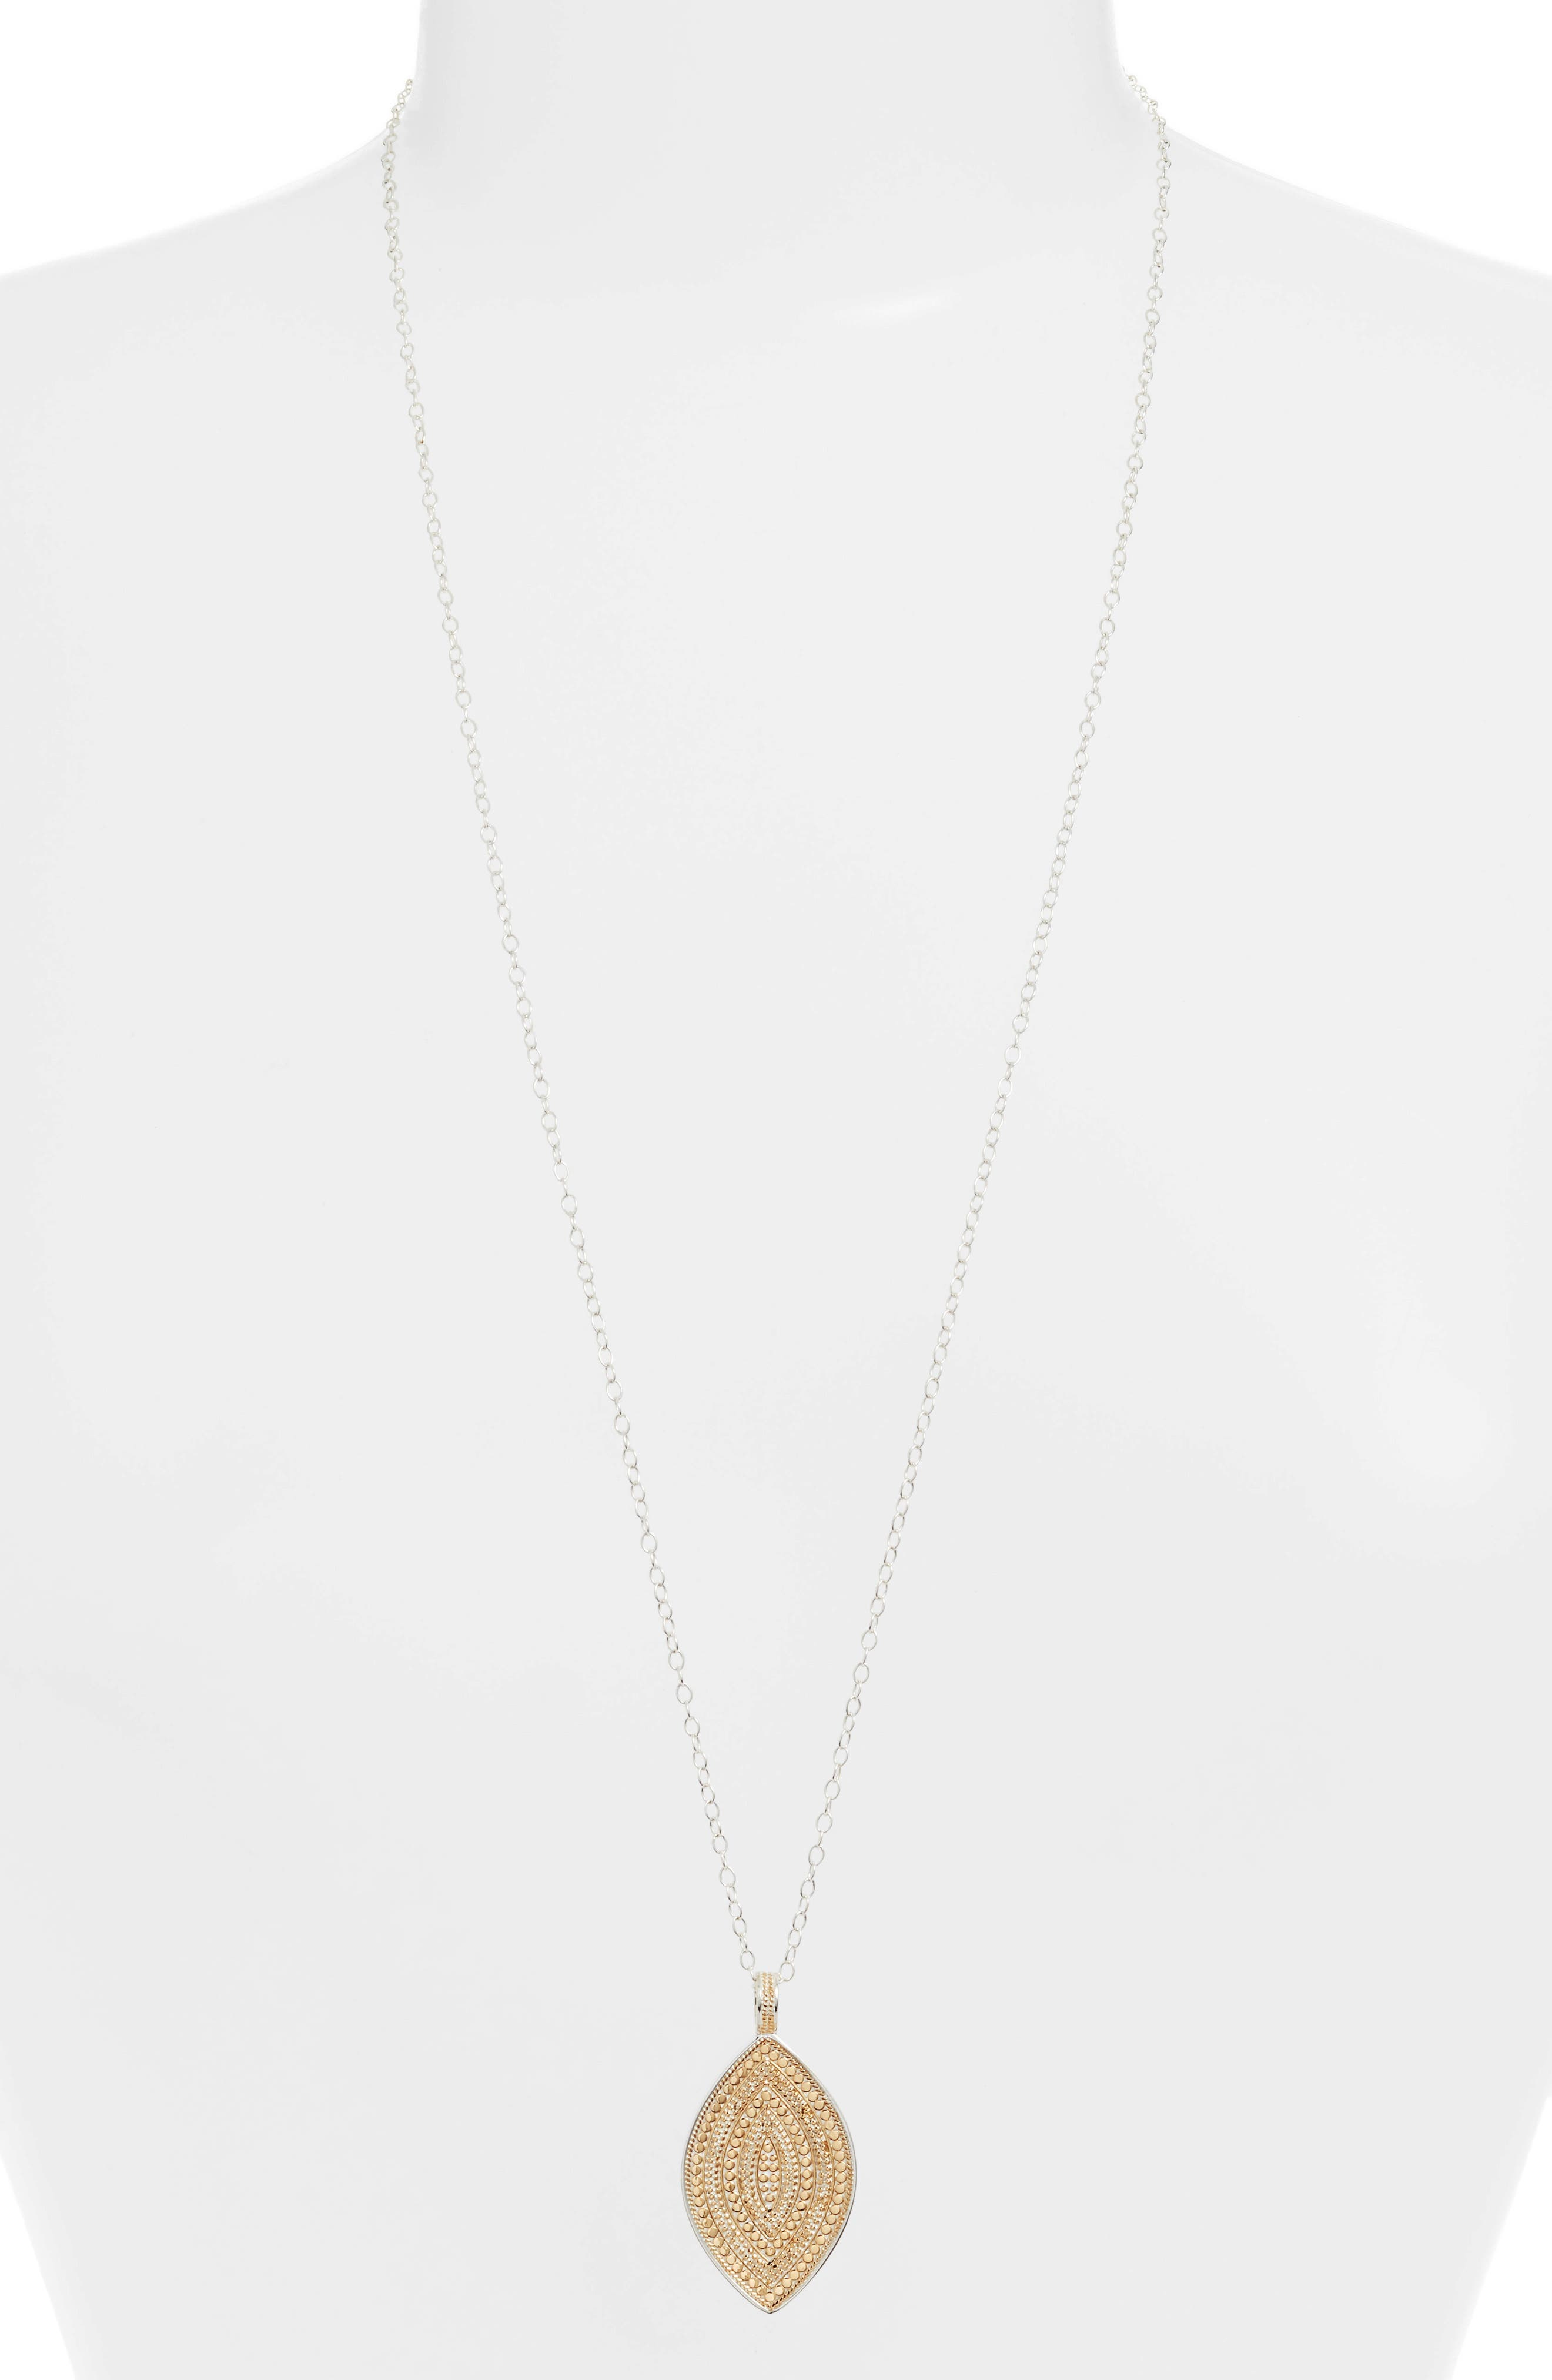 ANNA BECK Reversible Beaded Marquise Pendant Necklace in Gold/ Silver